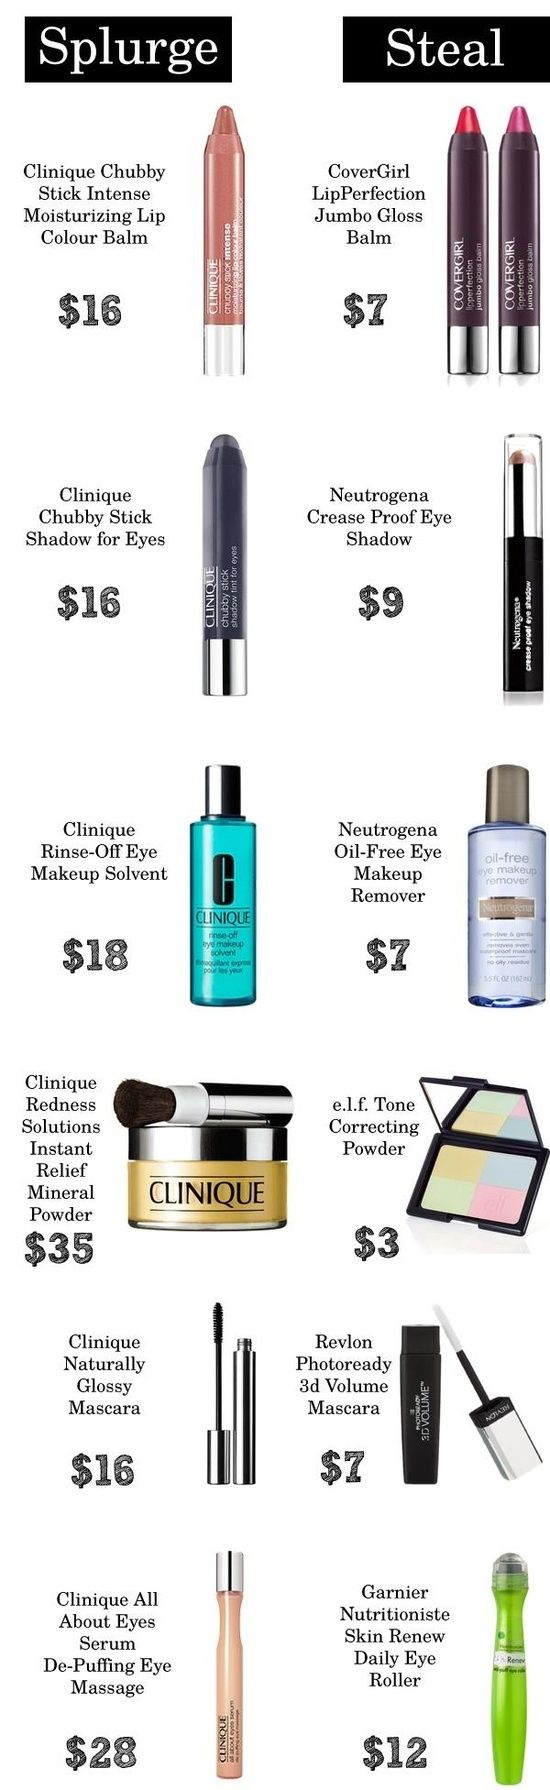 Splurge or Steal - Drug Store dupes of Clinique!